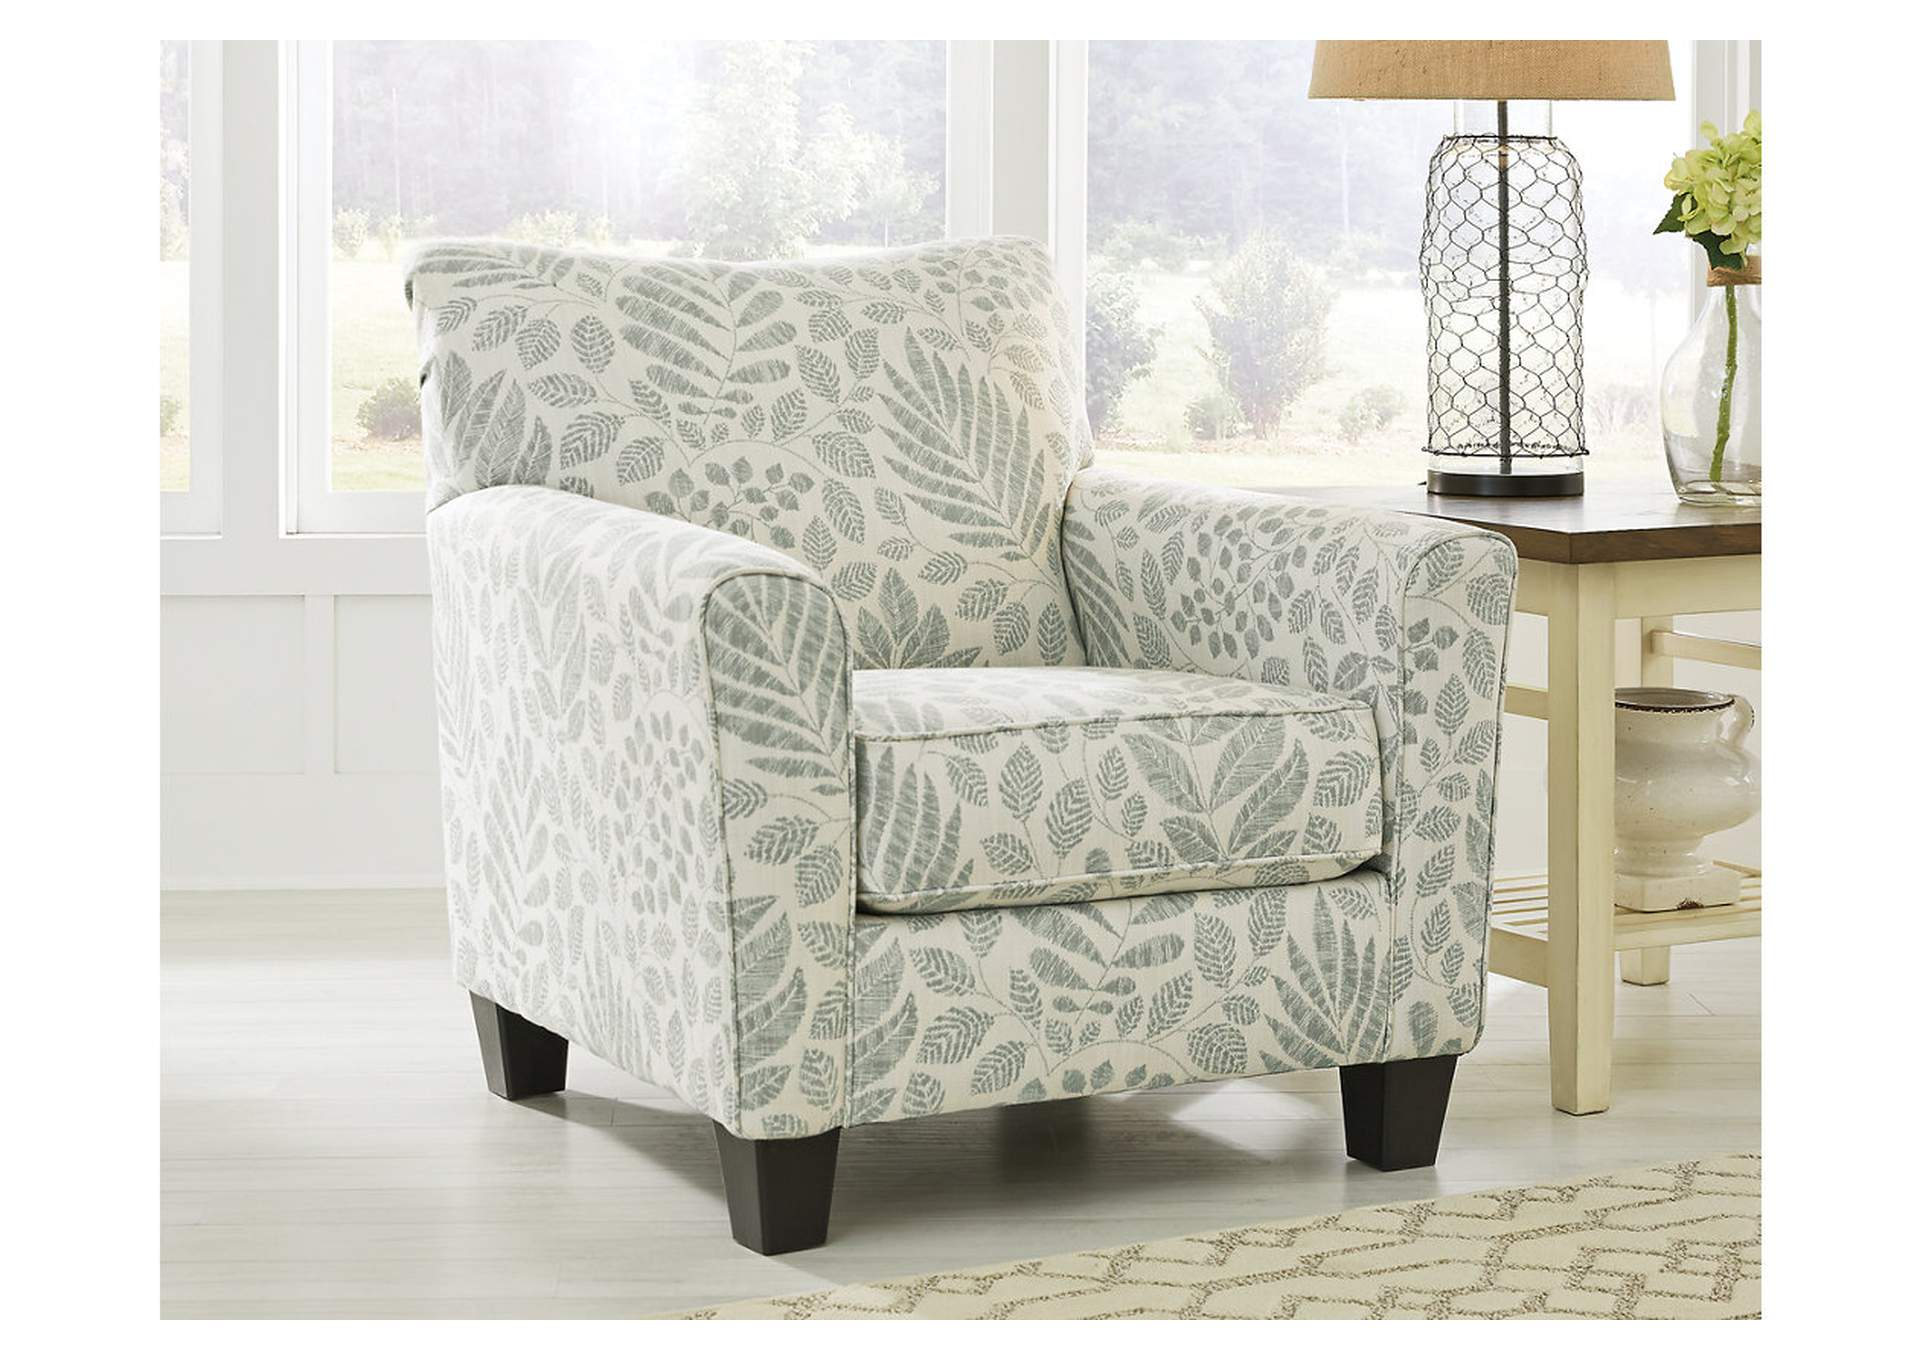 Kilarney Mist Accent Chair,Signature Design By Ashley